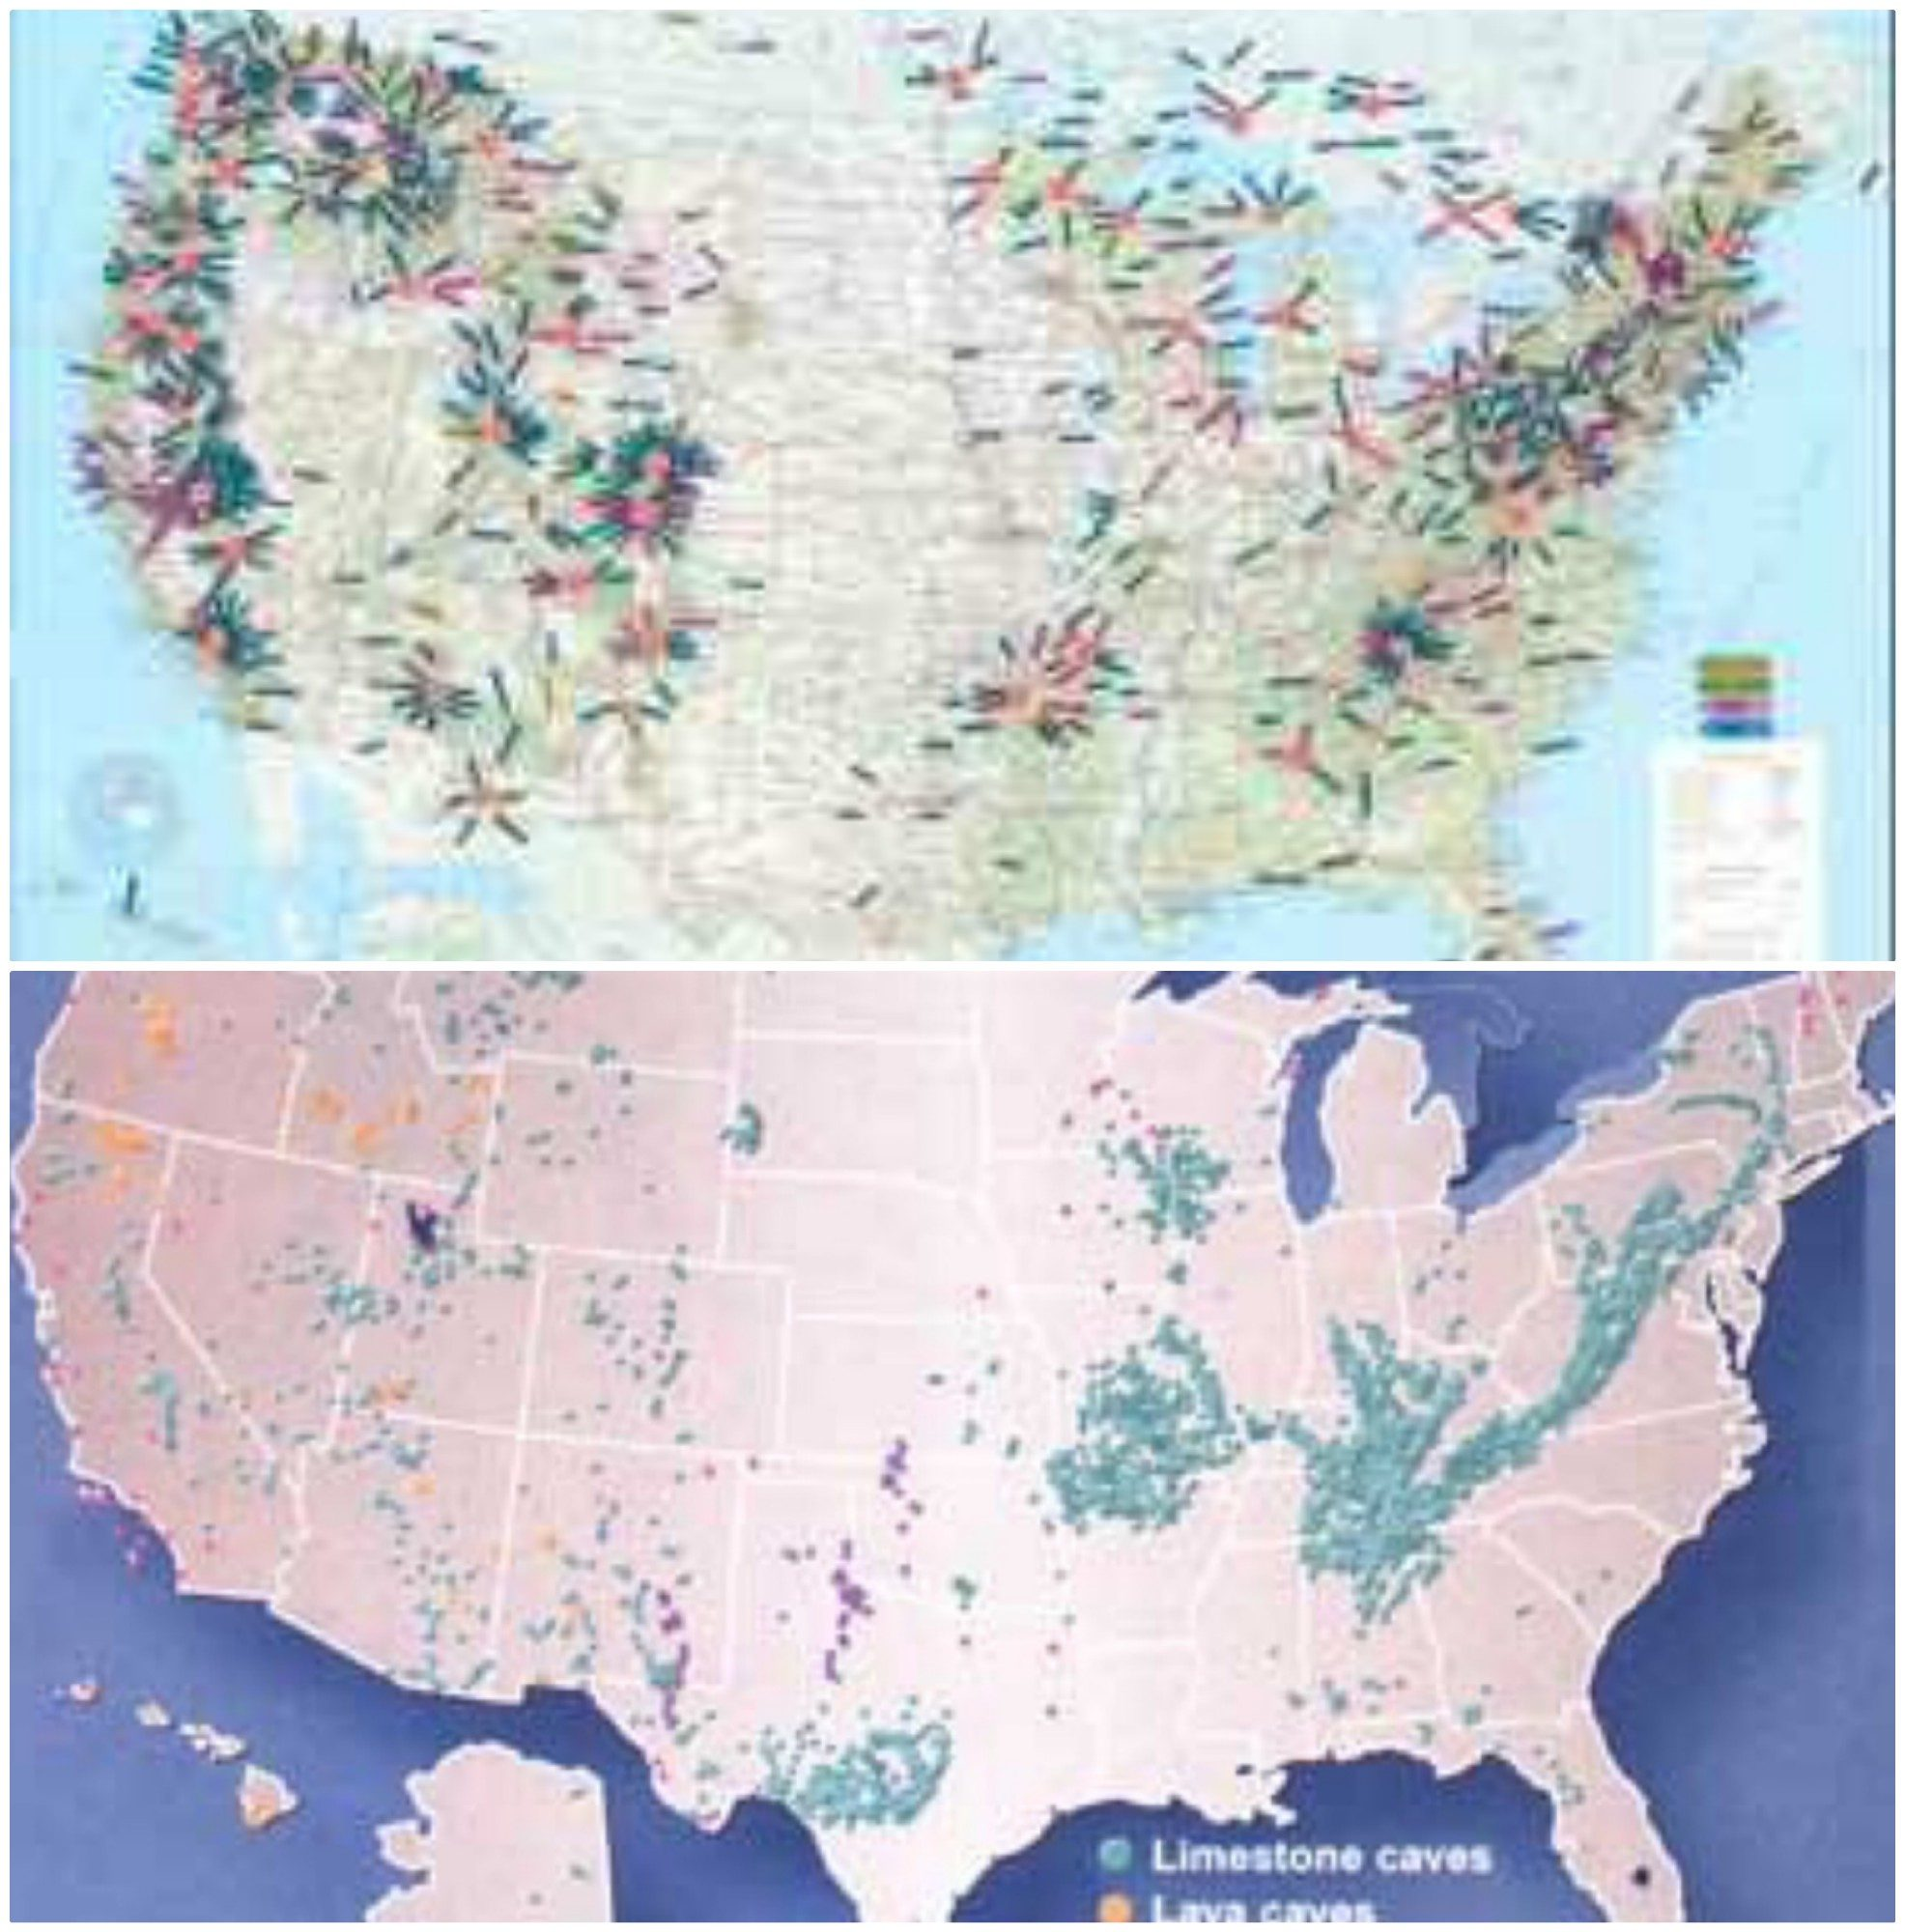 map of caves in the united states Does Map of Missing Persons in US Match Up with Cave Systems?